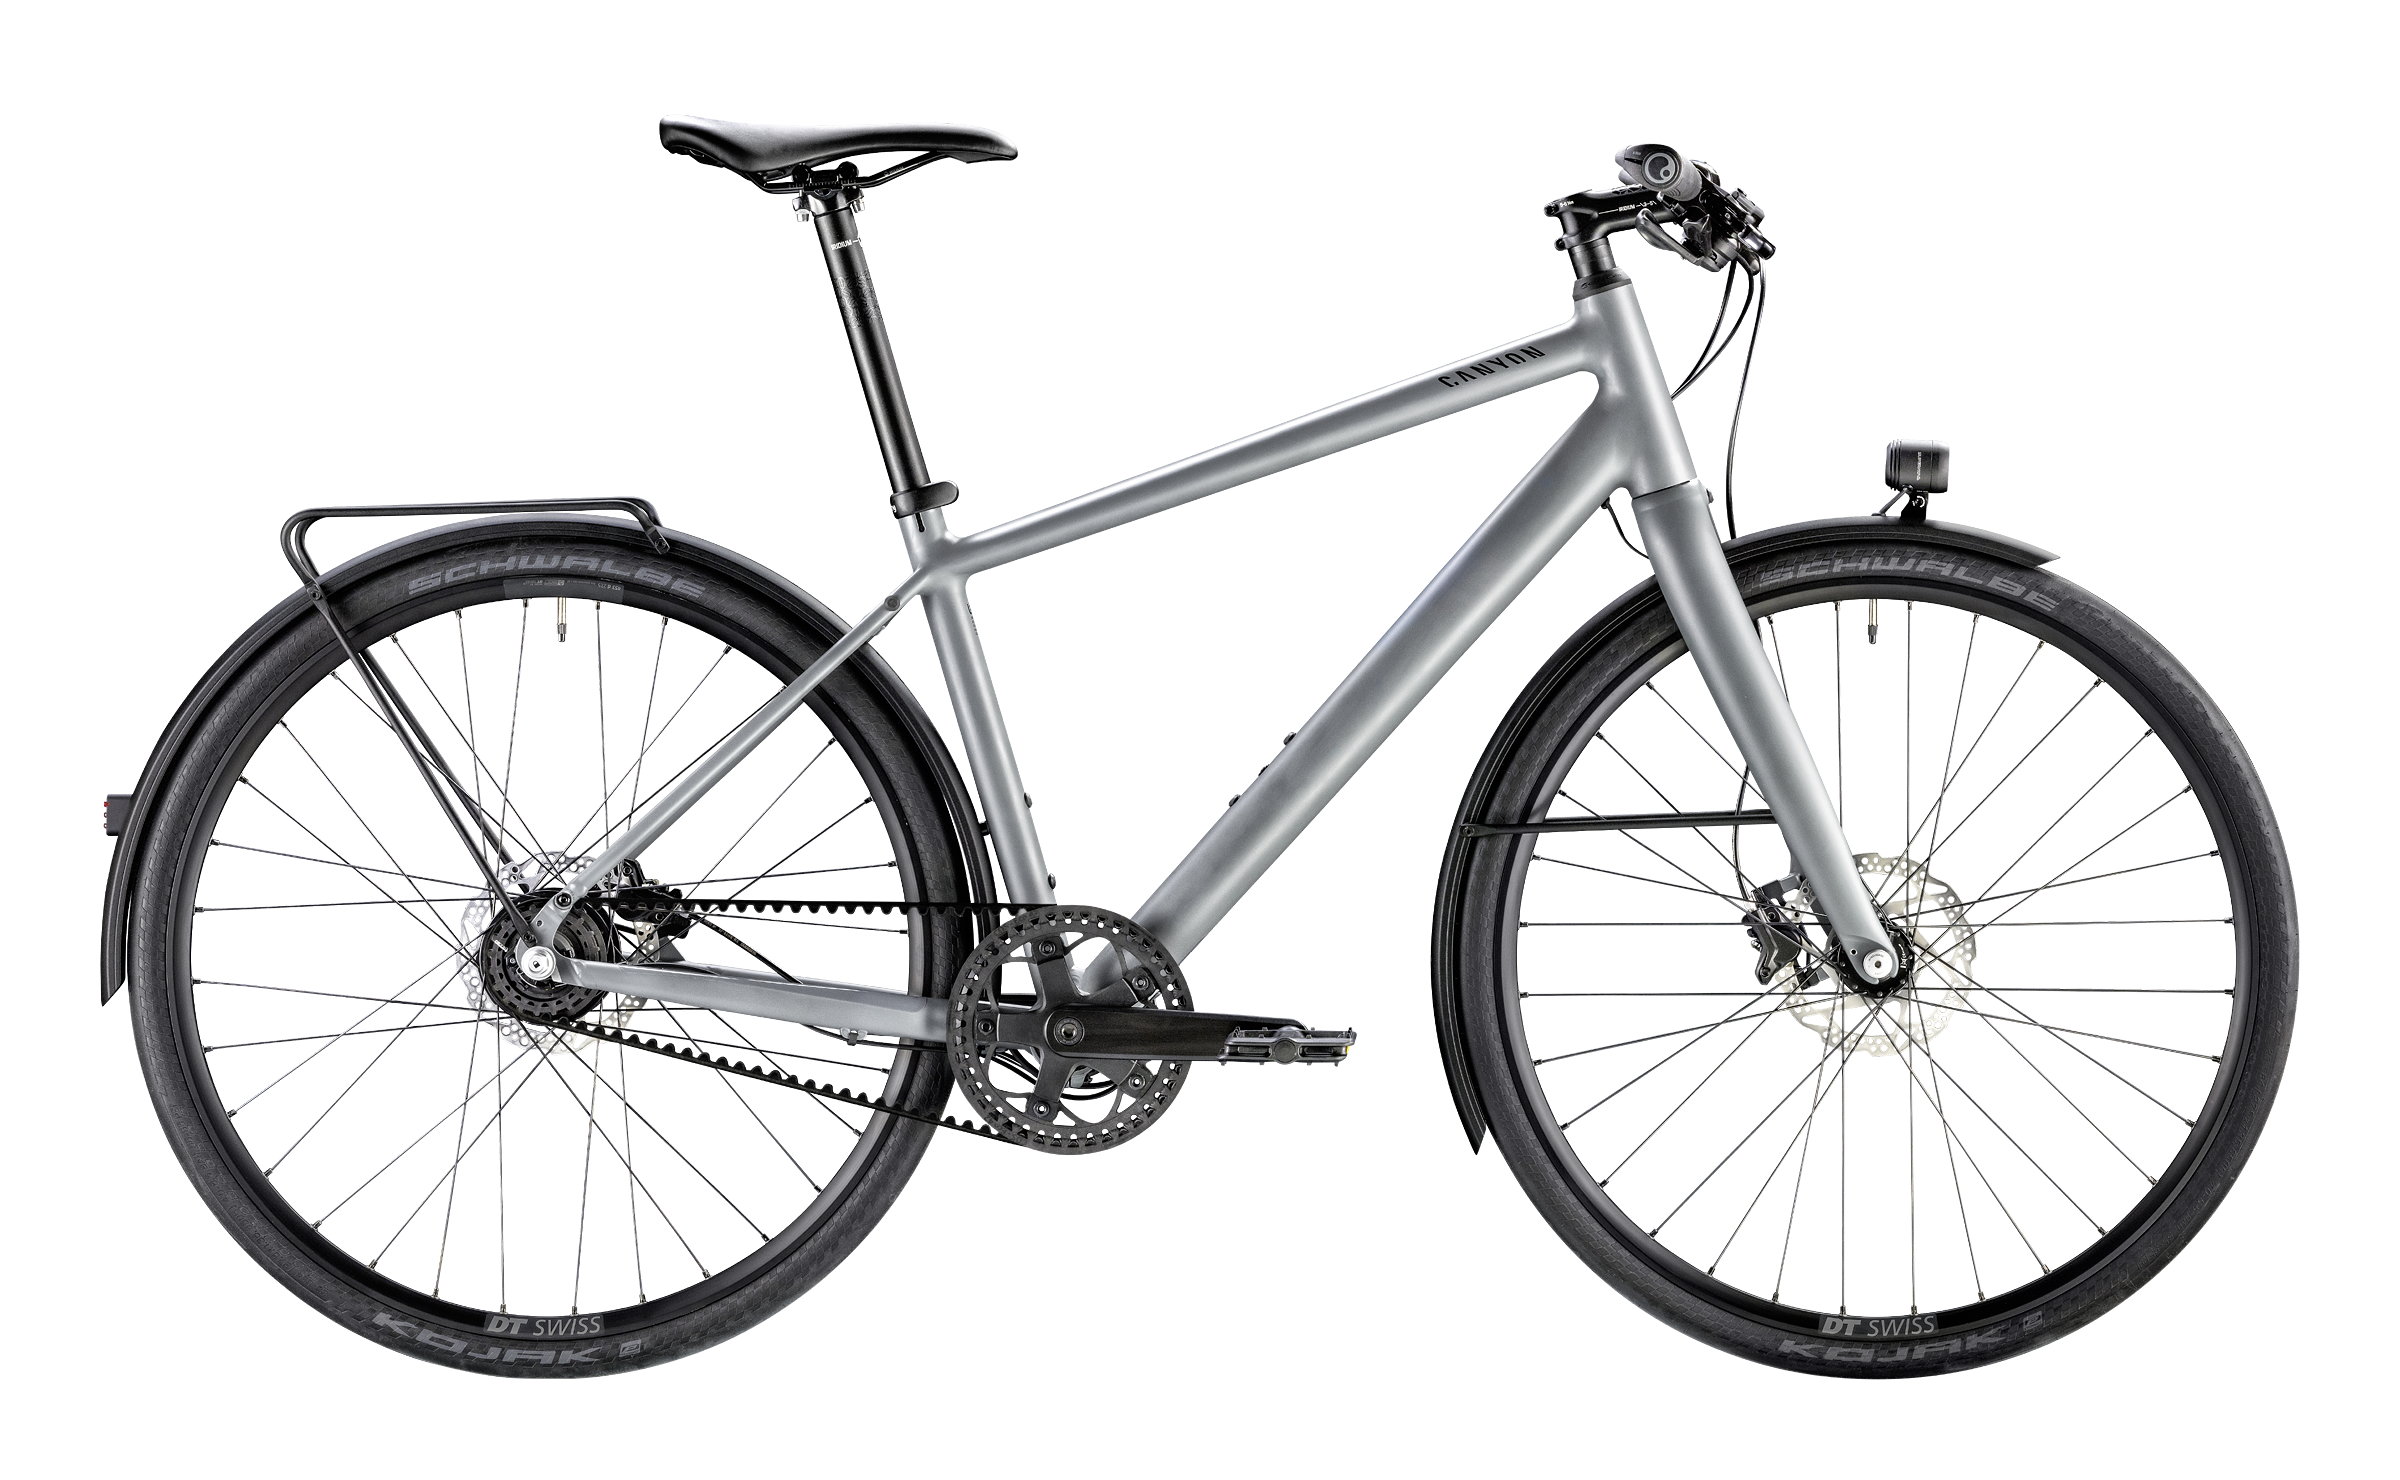 Canyon commuter urban bikes with a perfect design